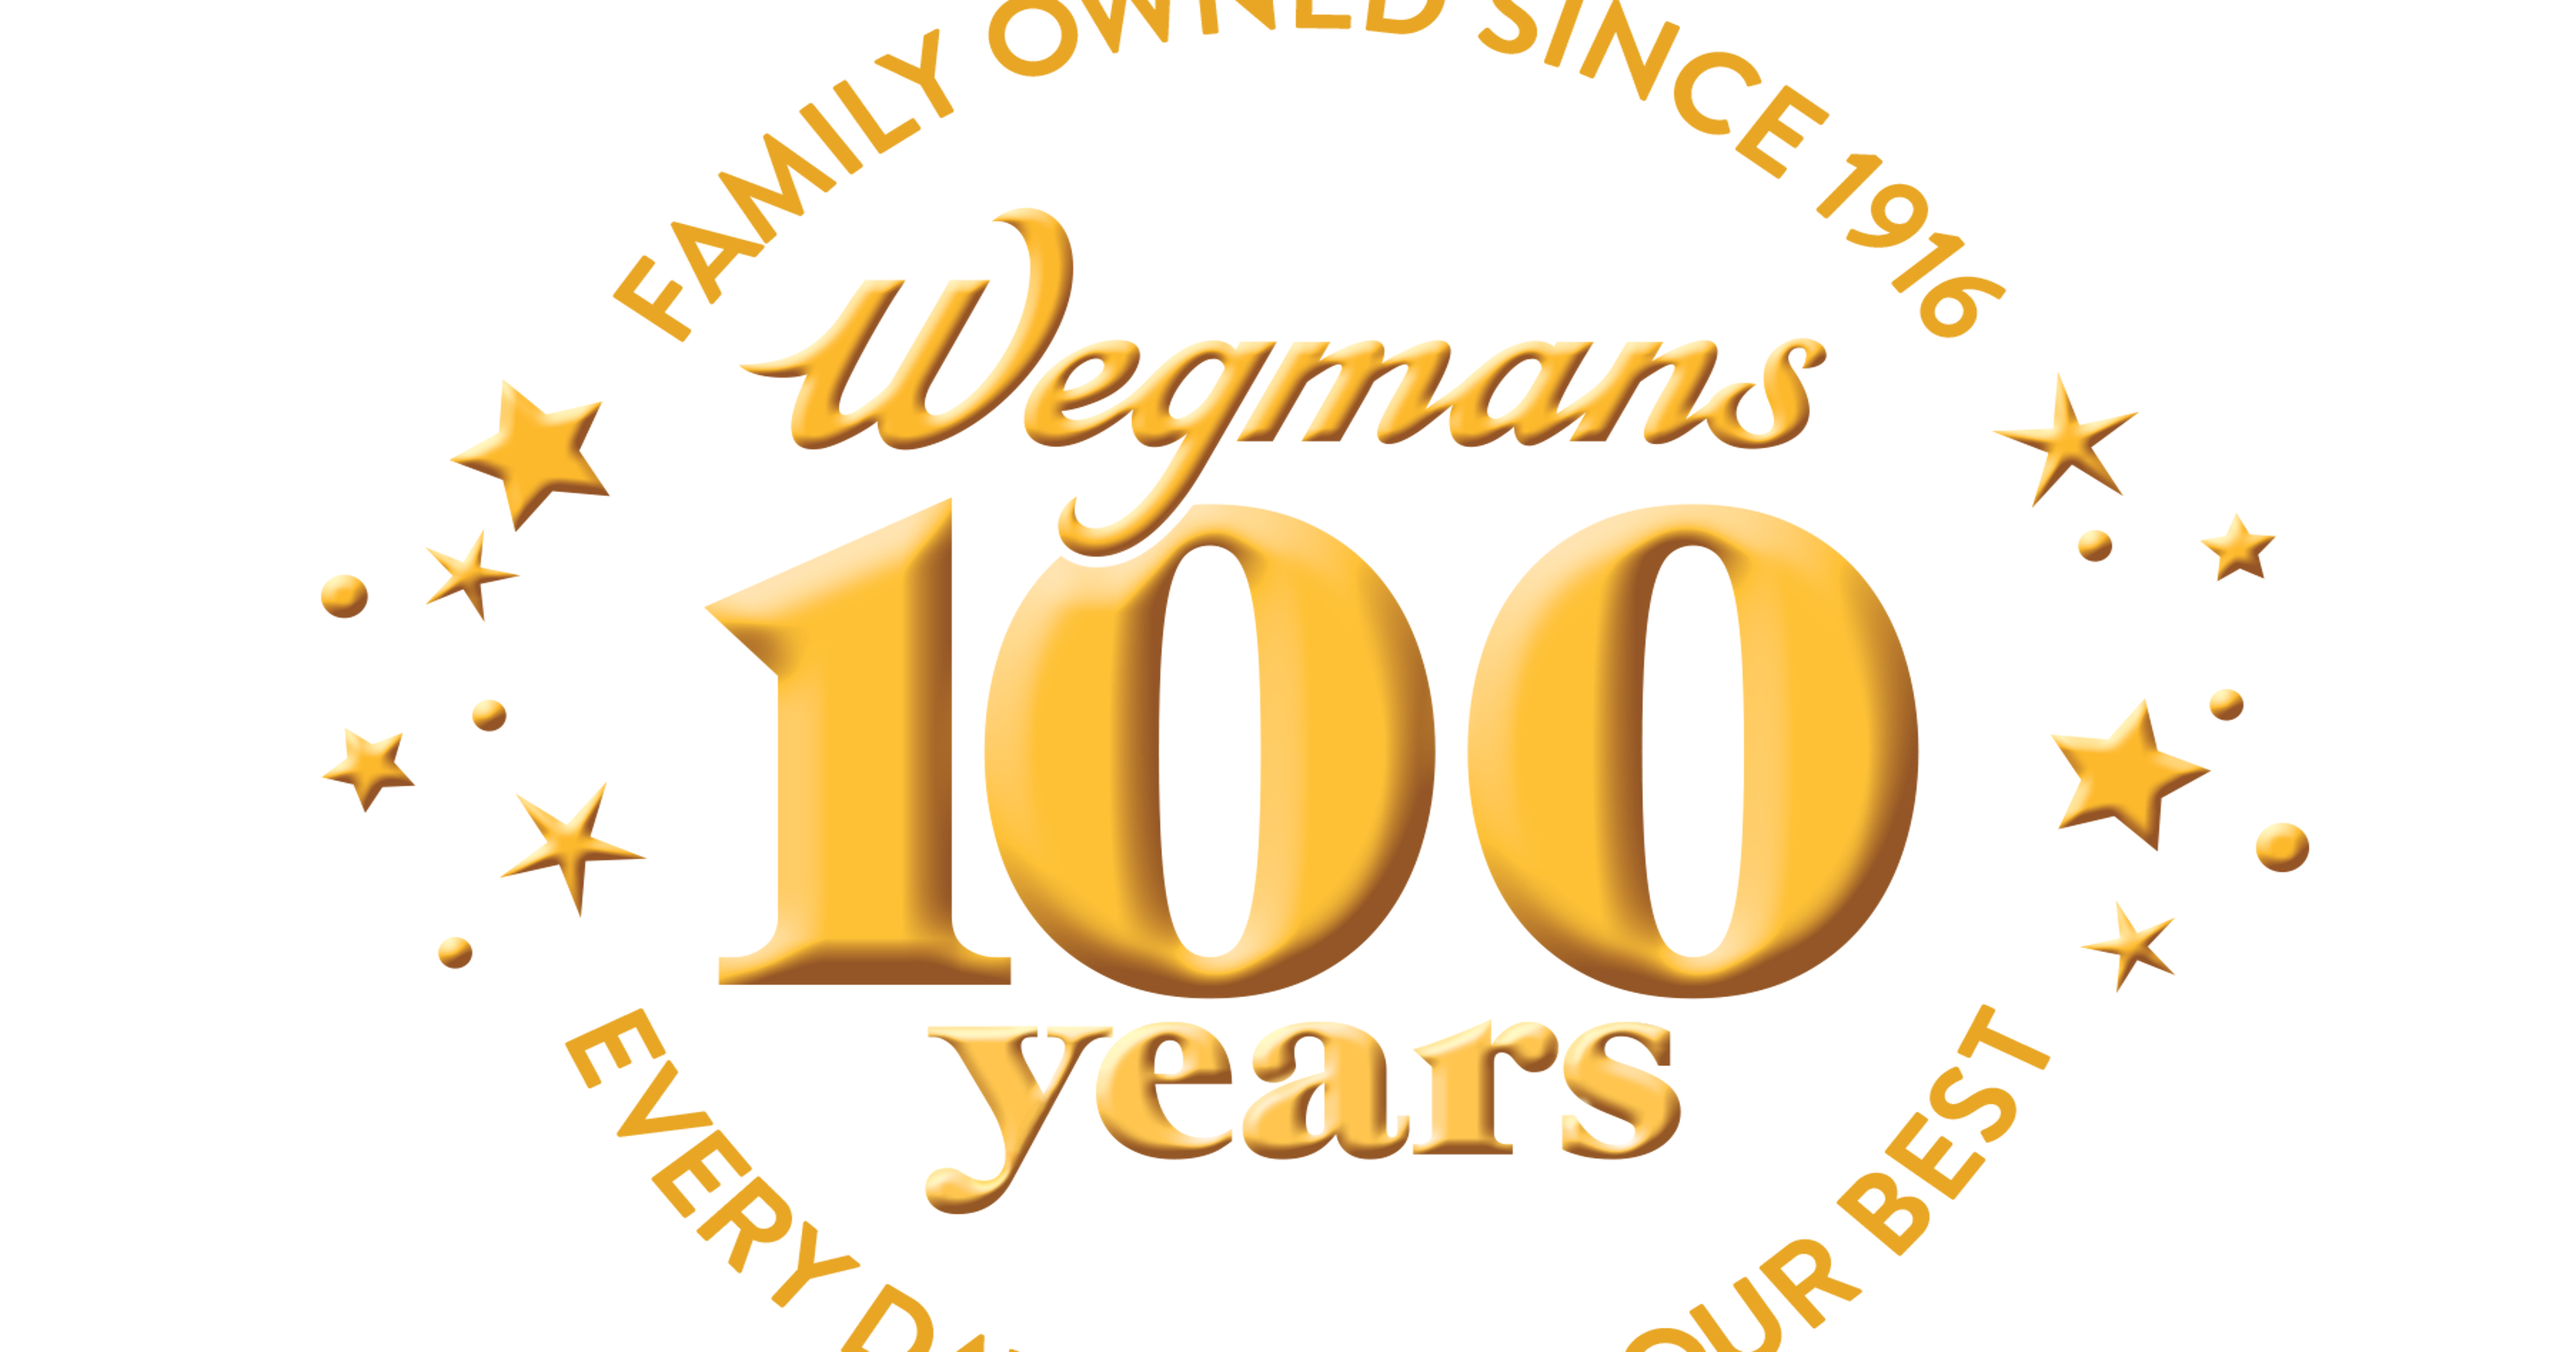 Wegmans timeline: The first 100 years